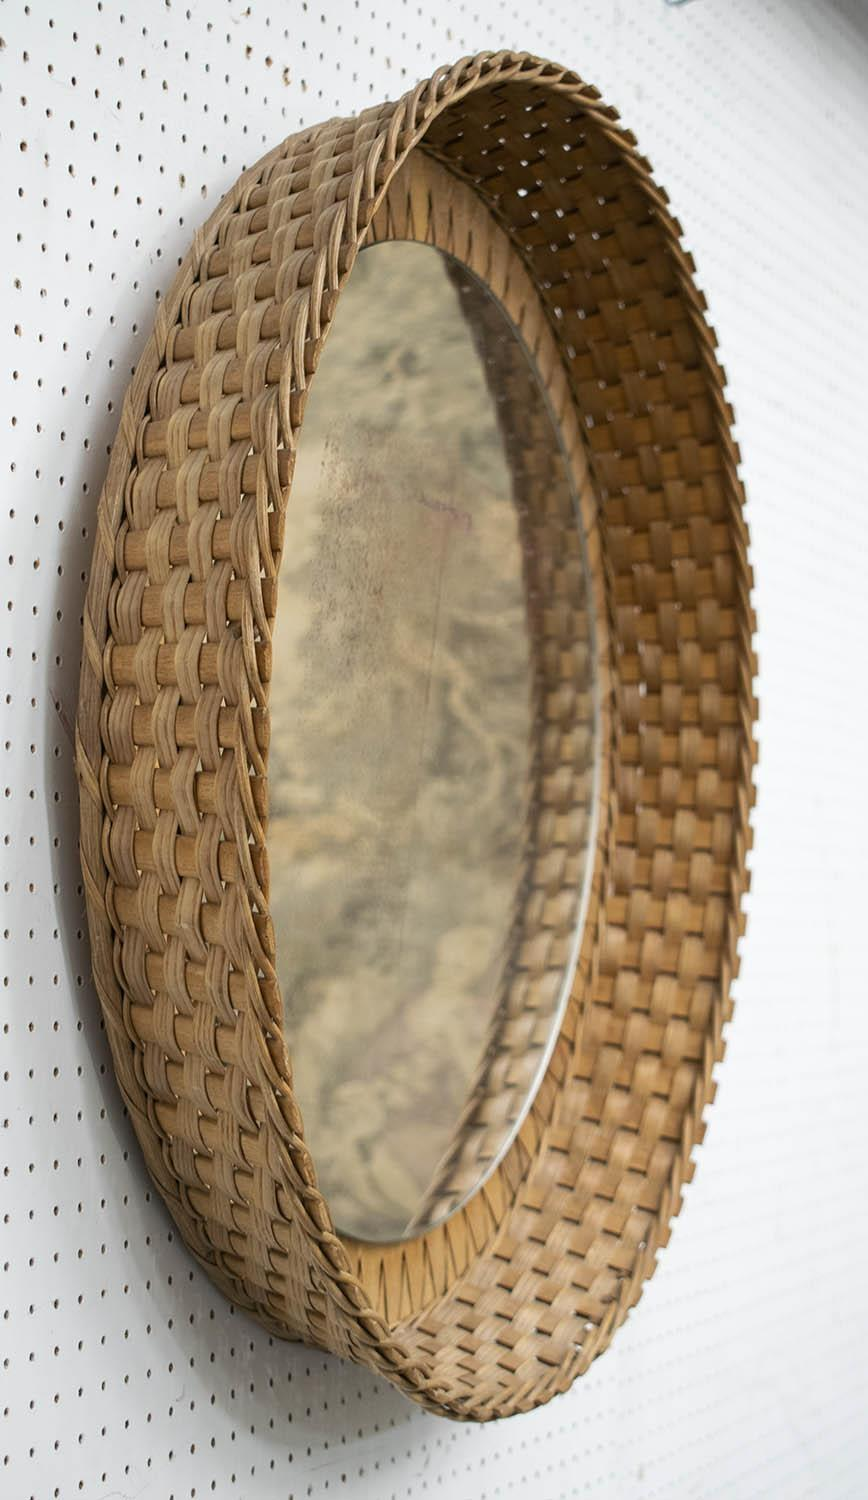 WALL MIRROR, wicker with distressed circular plate, 66cm D. - Image 2 of 2